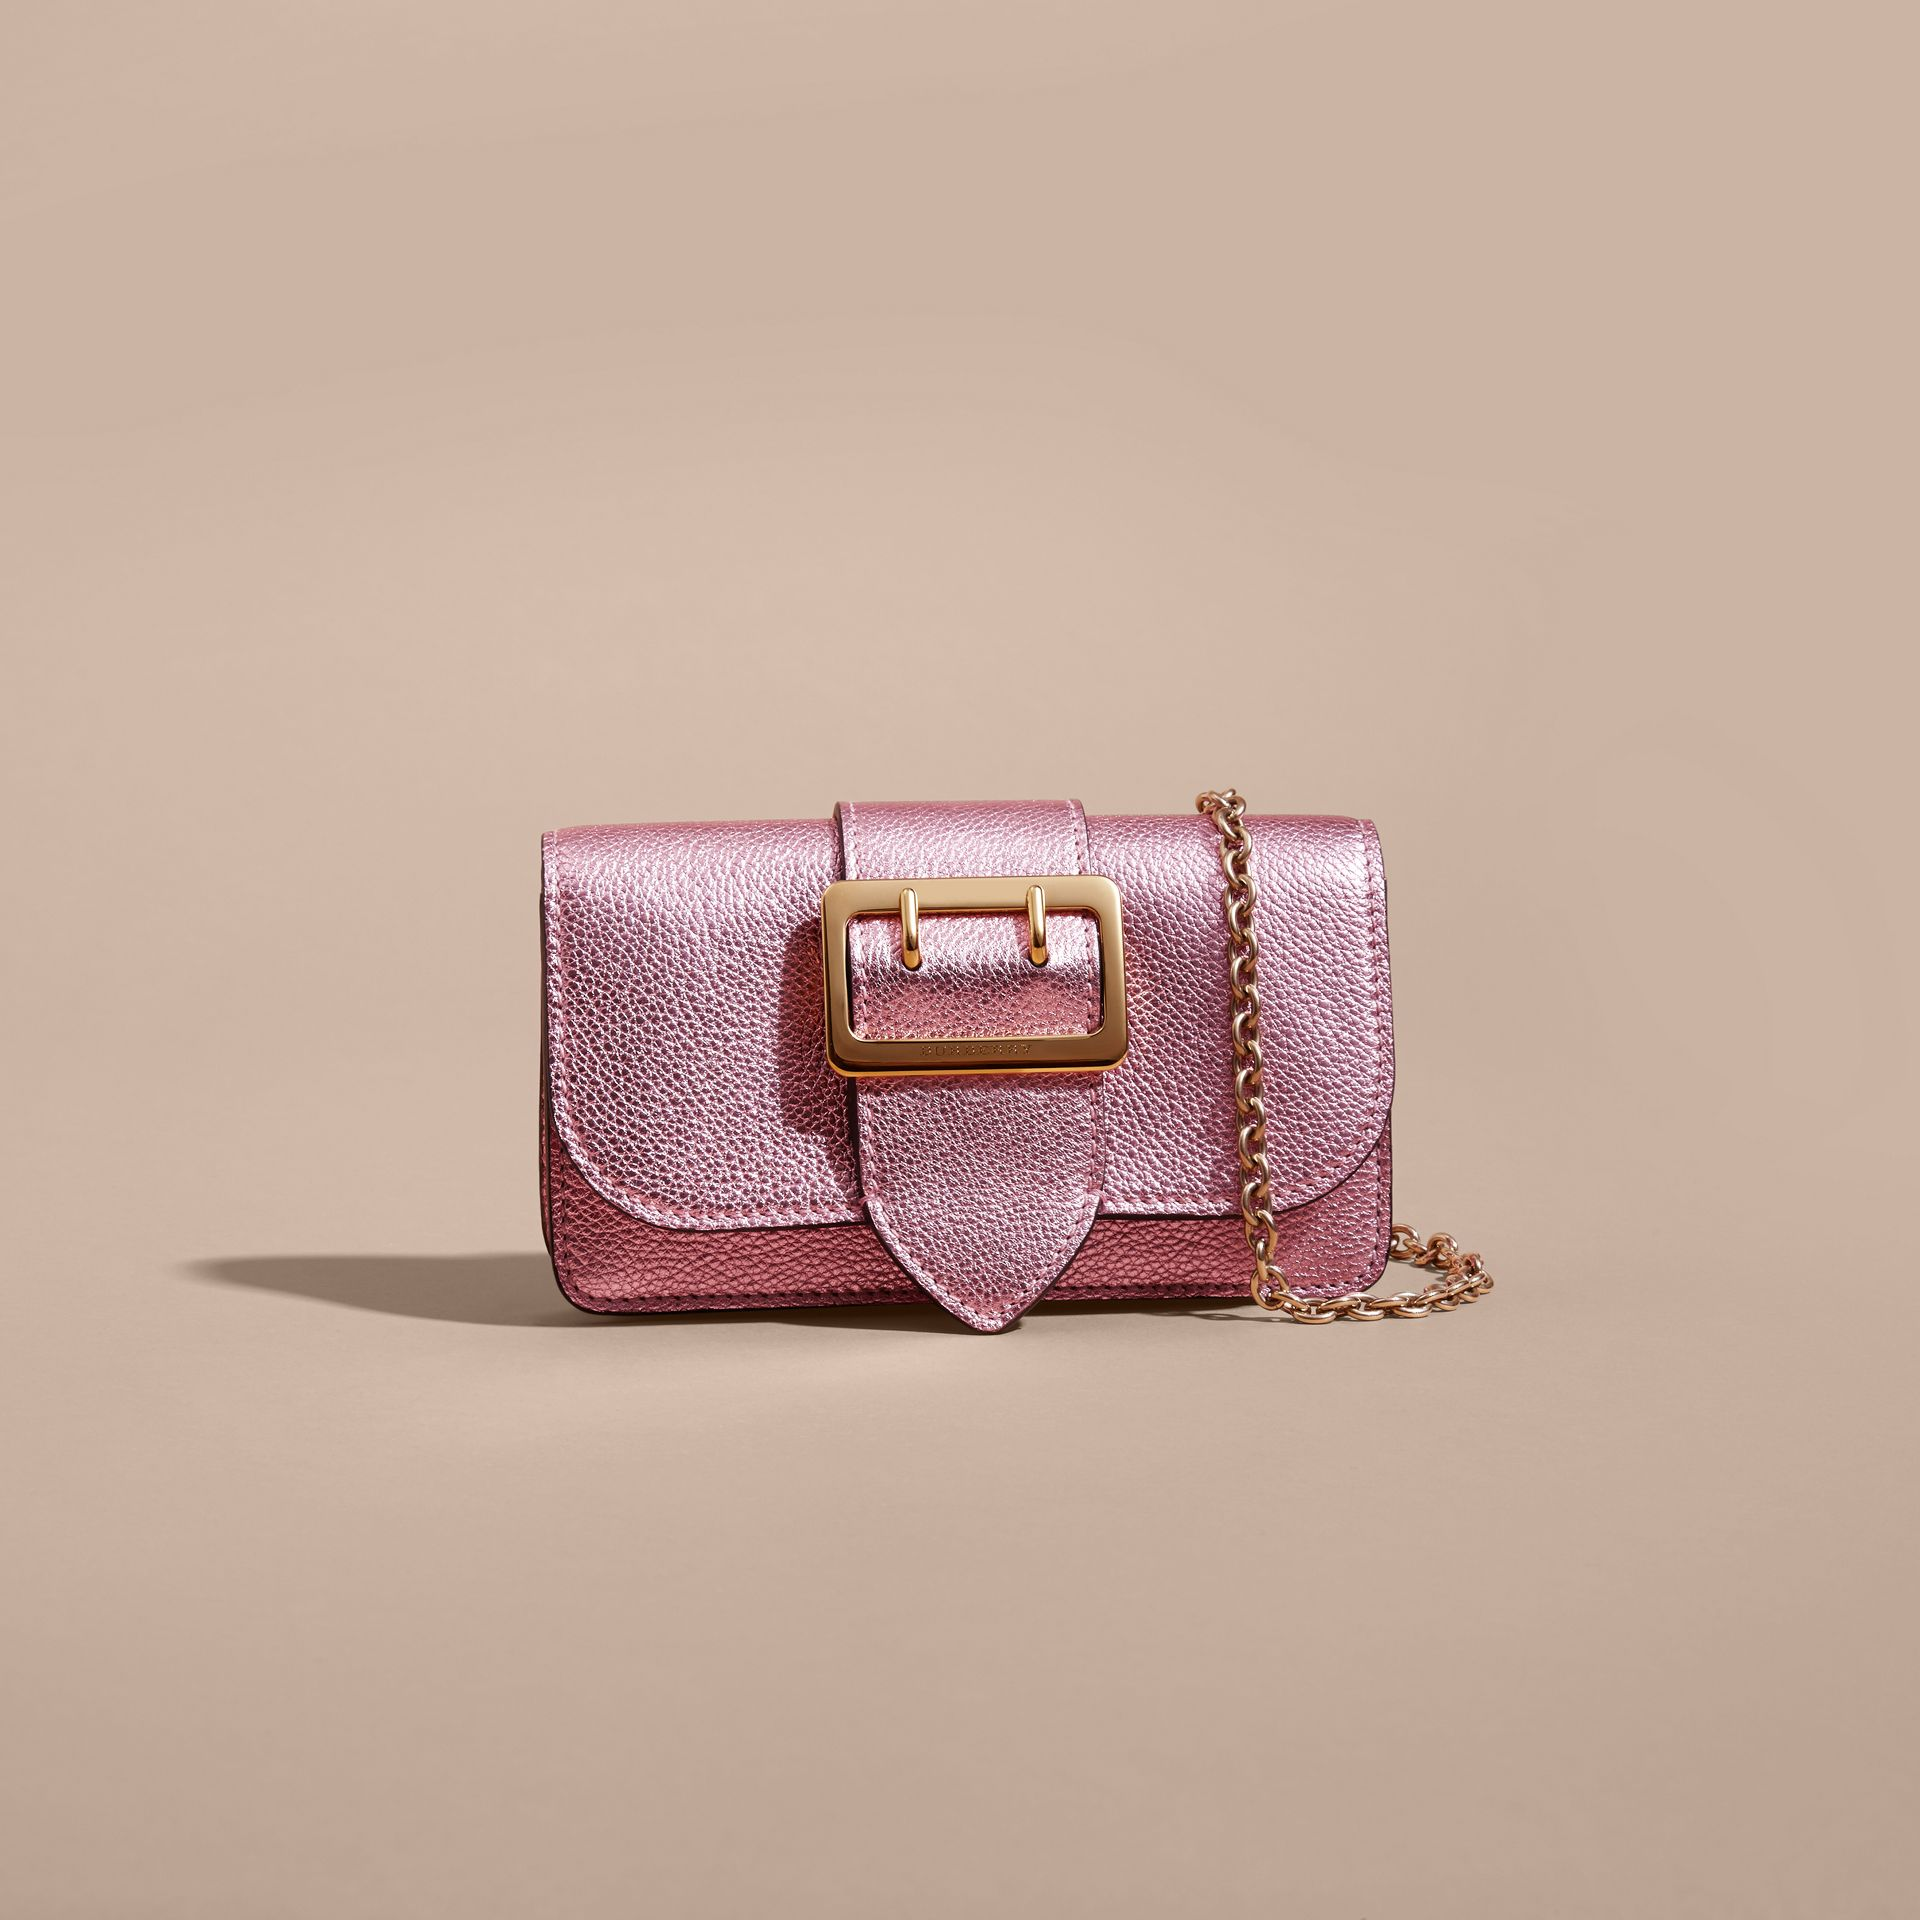 The Mini Buckle Bag in Metallic Grainy Leather in Pale Orchid - gallery image 9